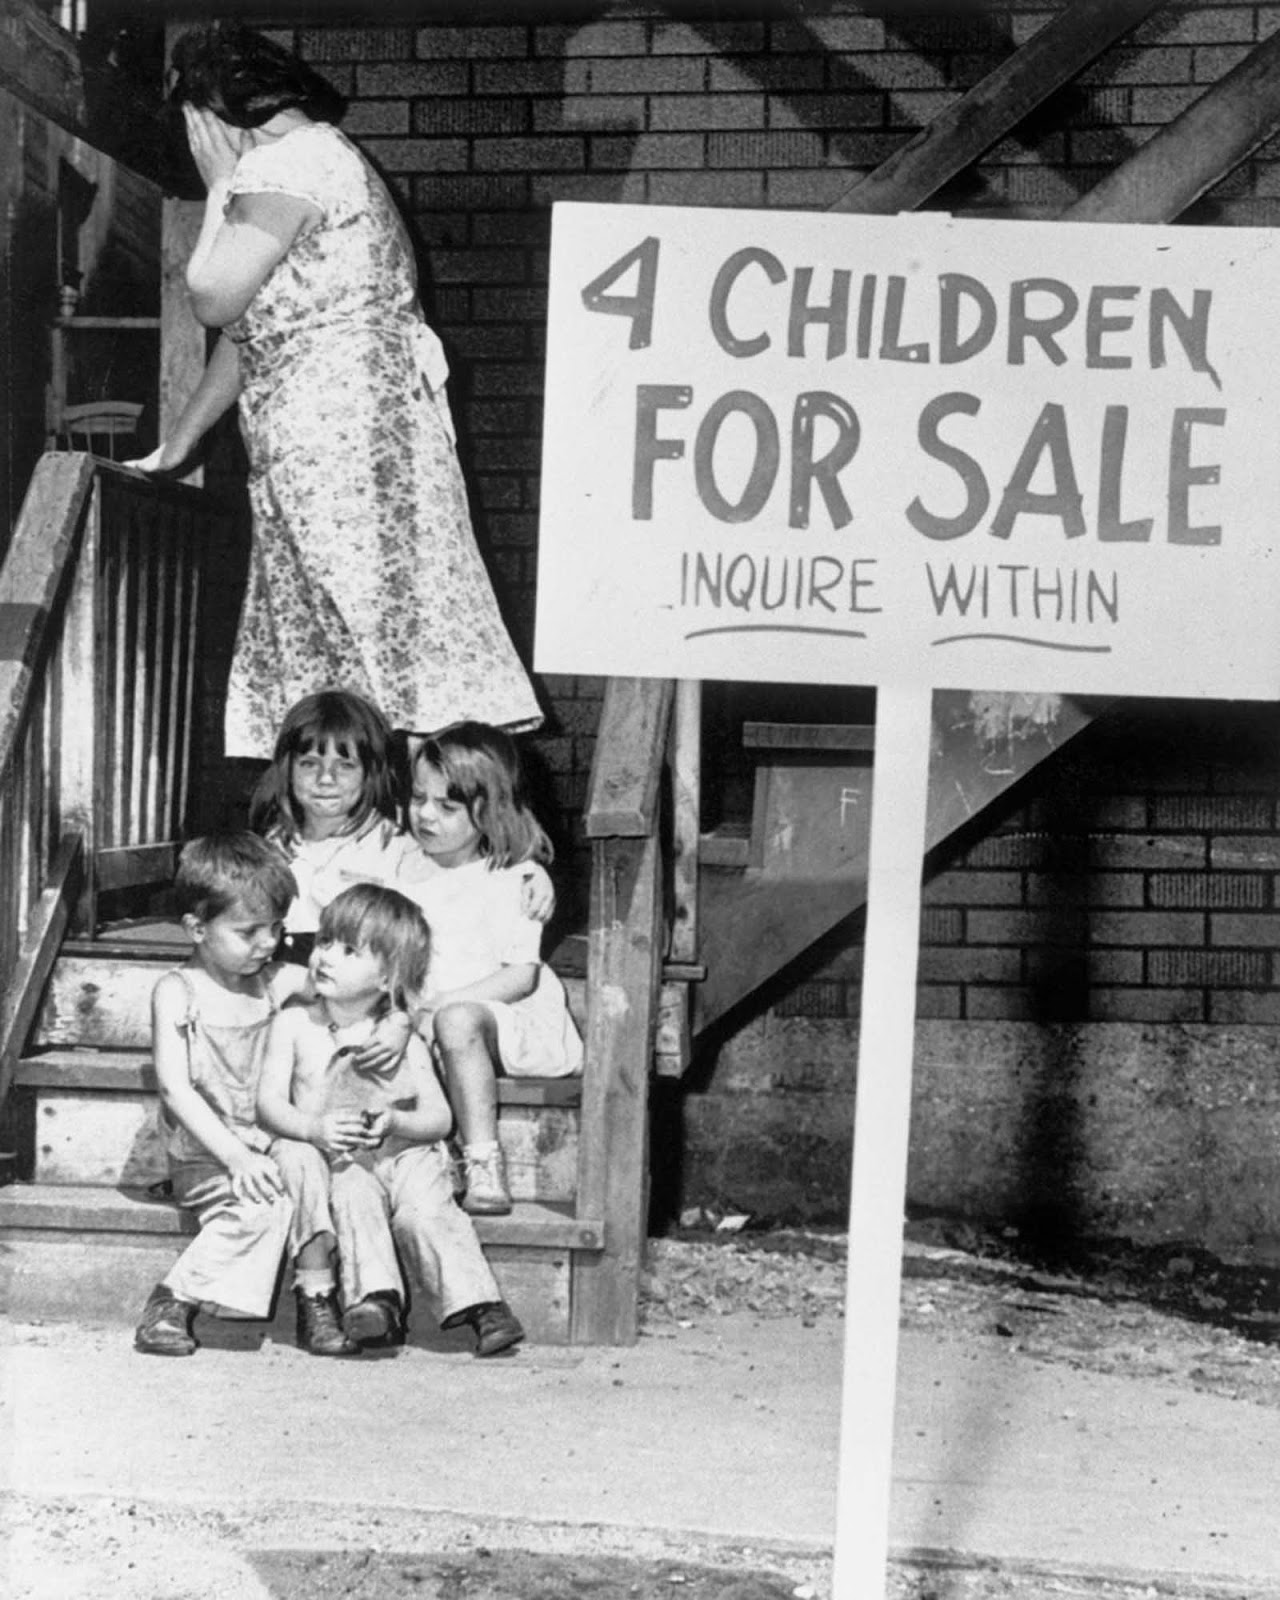 four_children_for_sale_1948